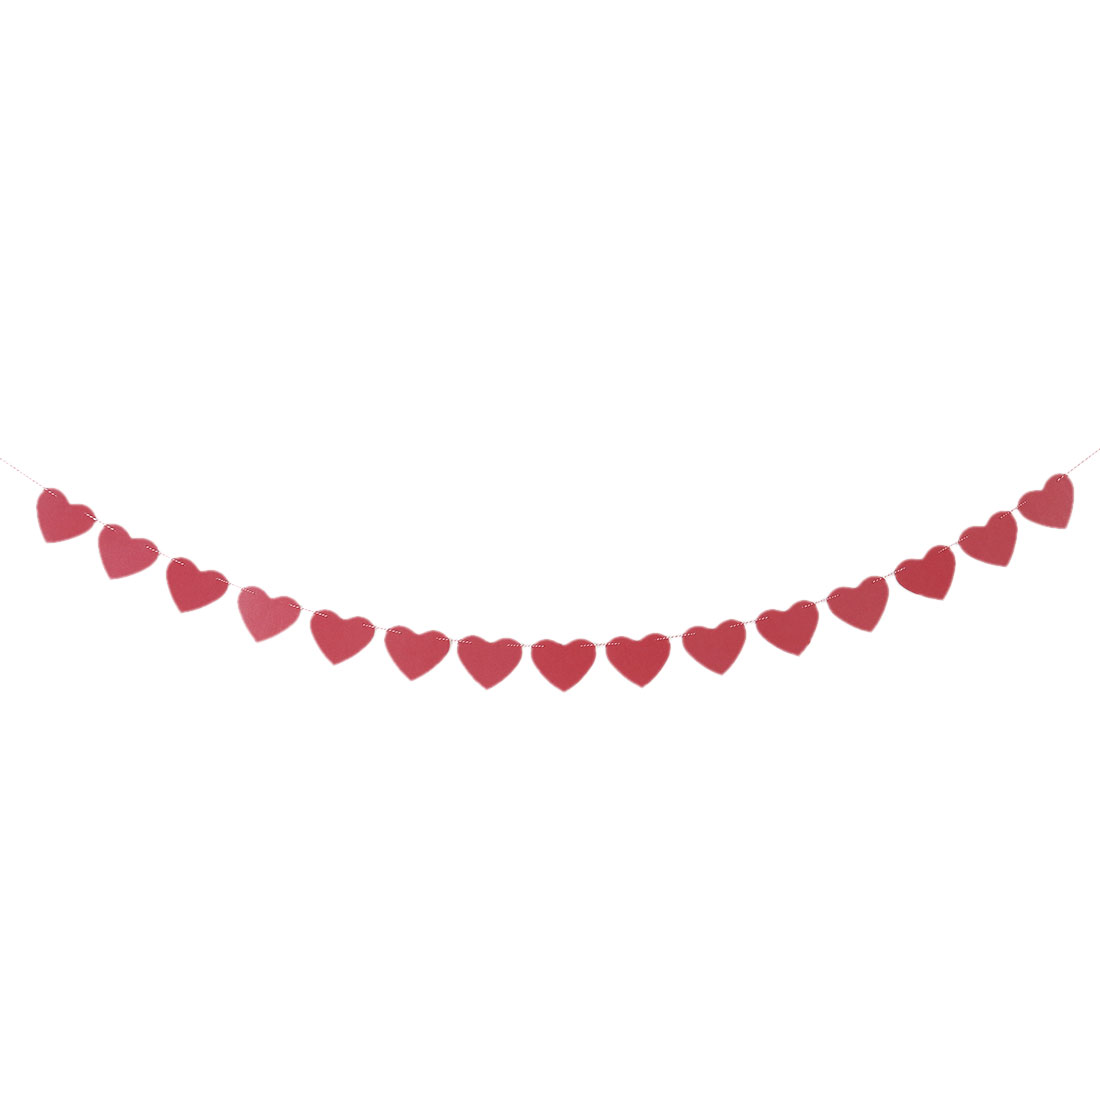 Paper Heart Shaped Party Decoration Photo Prop Bunting Banner Red 3 Meter Length